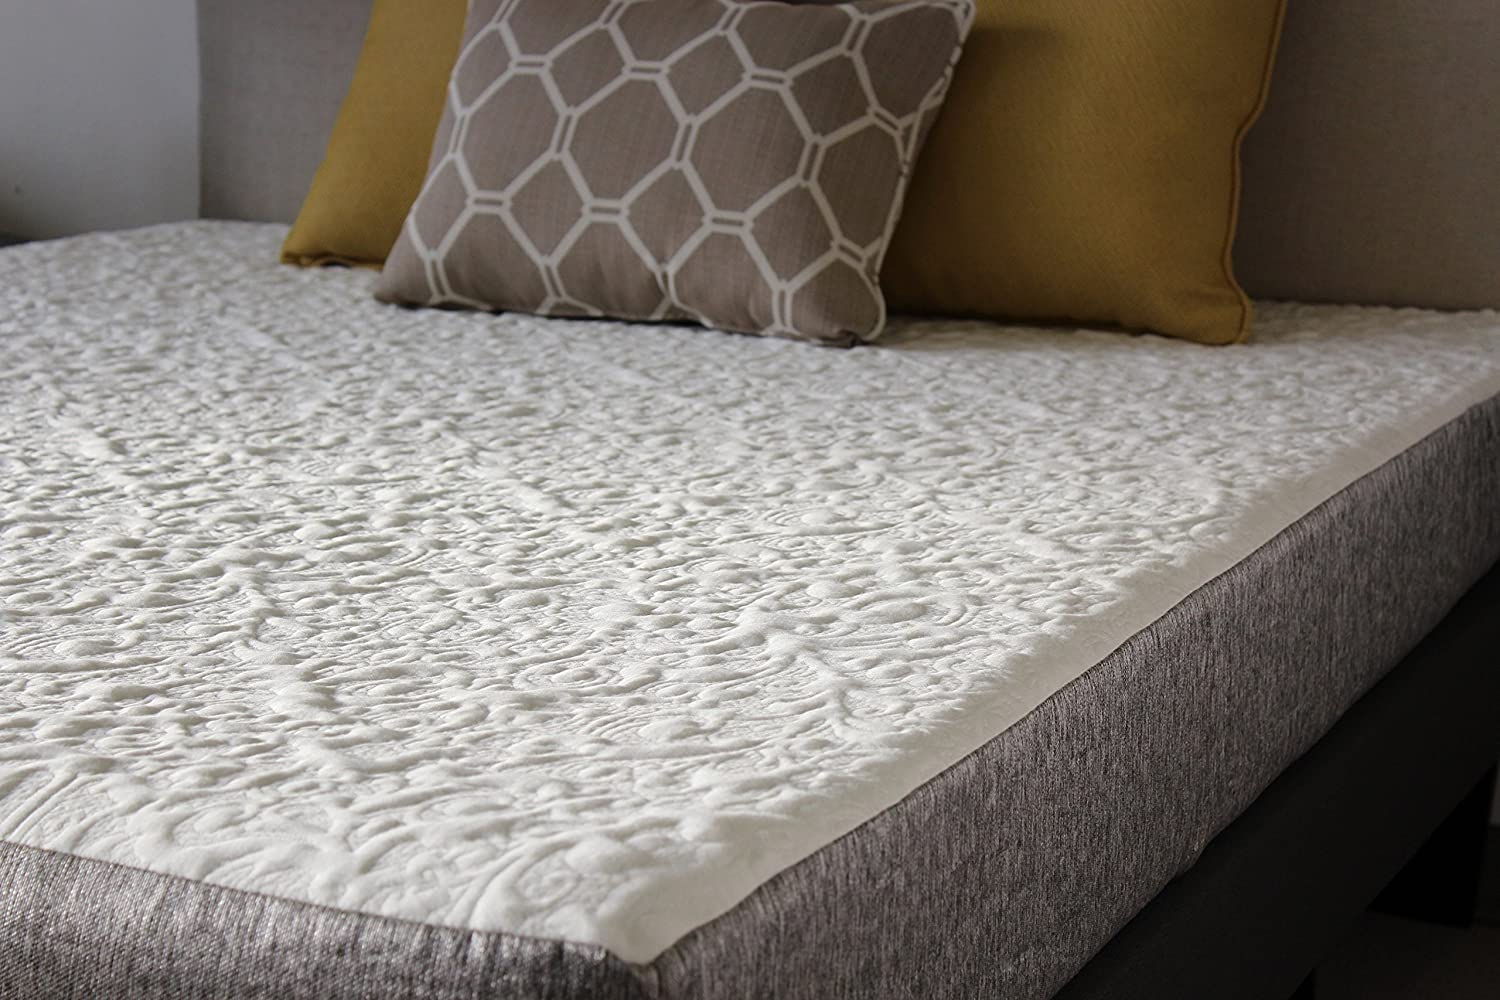 Handcrafted in USA 8 Inch Cool Sleep Gel Memory Foam Mattress with Premium Textured 8-Way Stretch Cover Queen